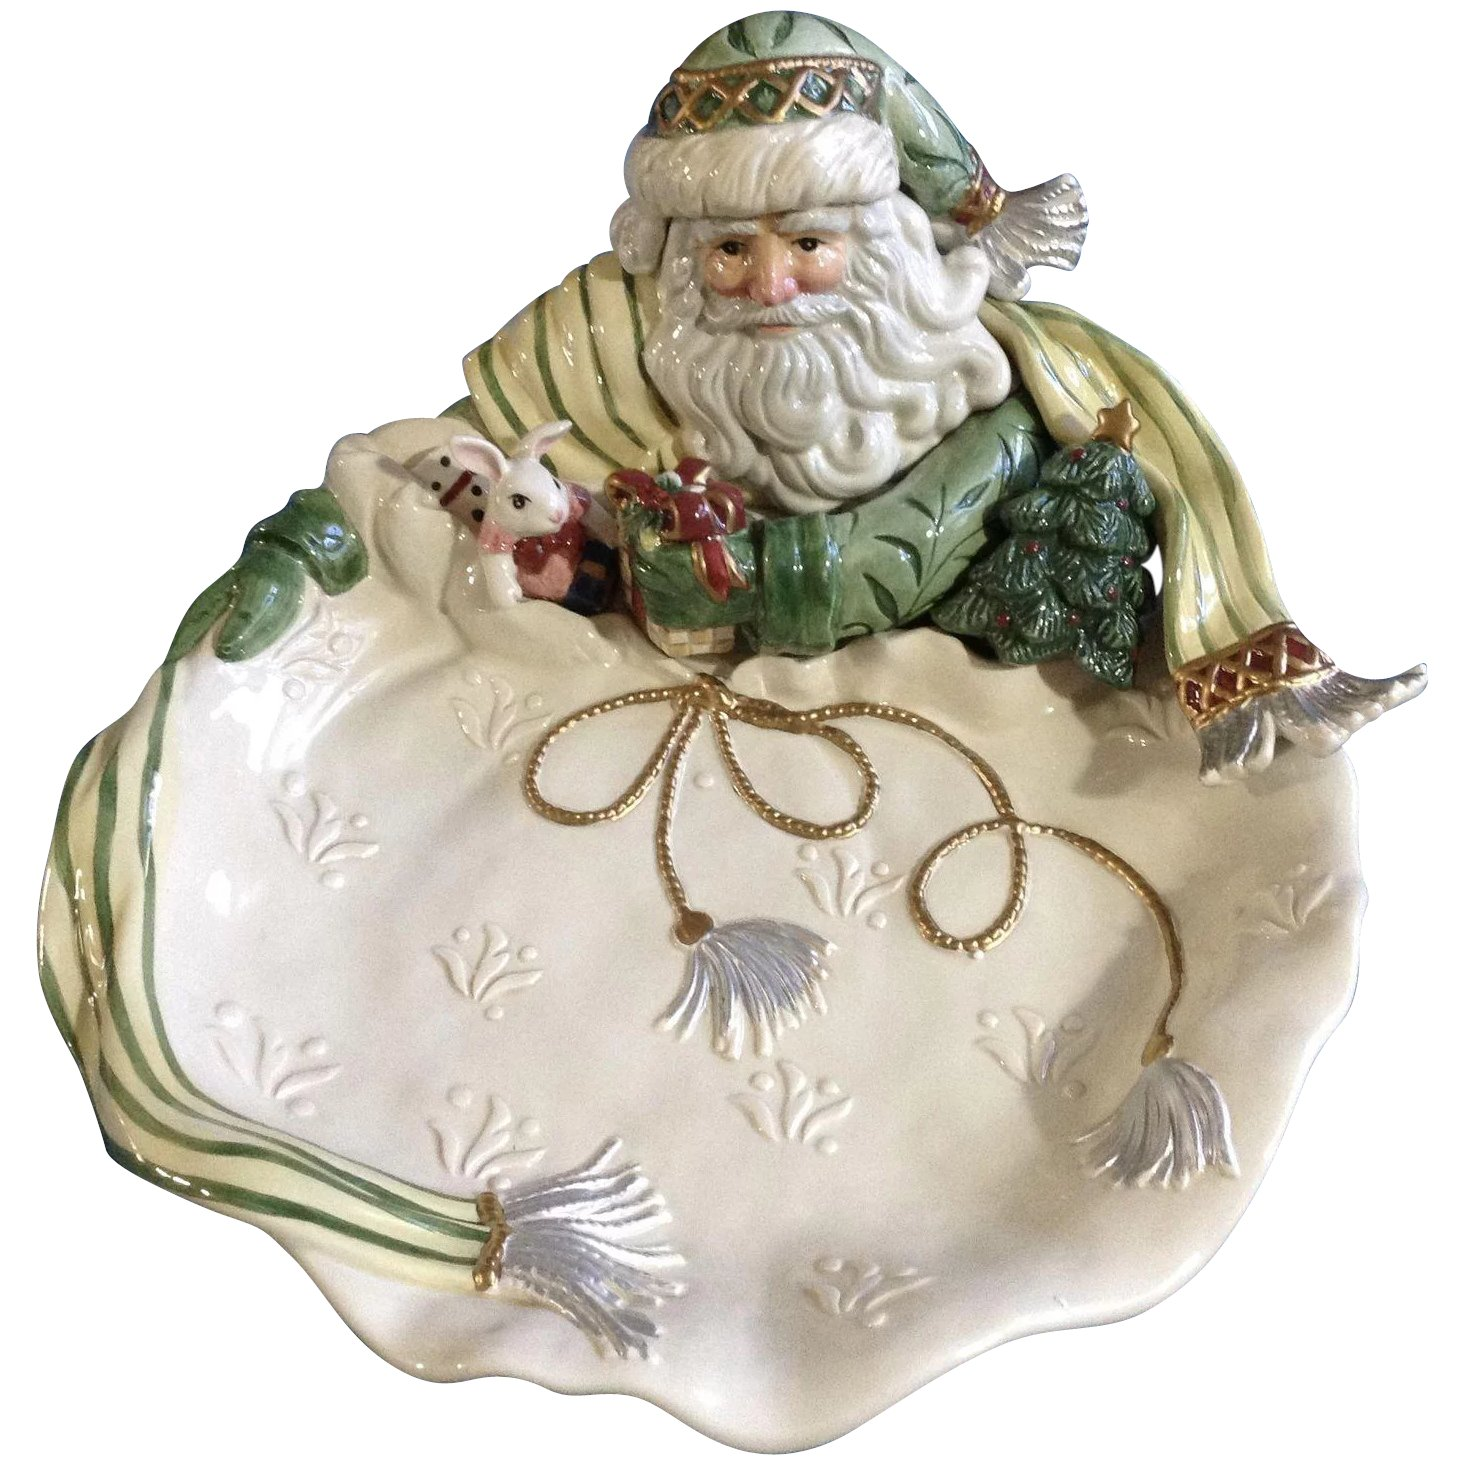 Fitz And Floyd Christmas 2021 Gregorian Collection By Fitz Floyd Christmas Santa Claus Green Hat Gumgumfuninthesun Ruby Lane